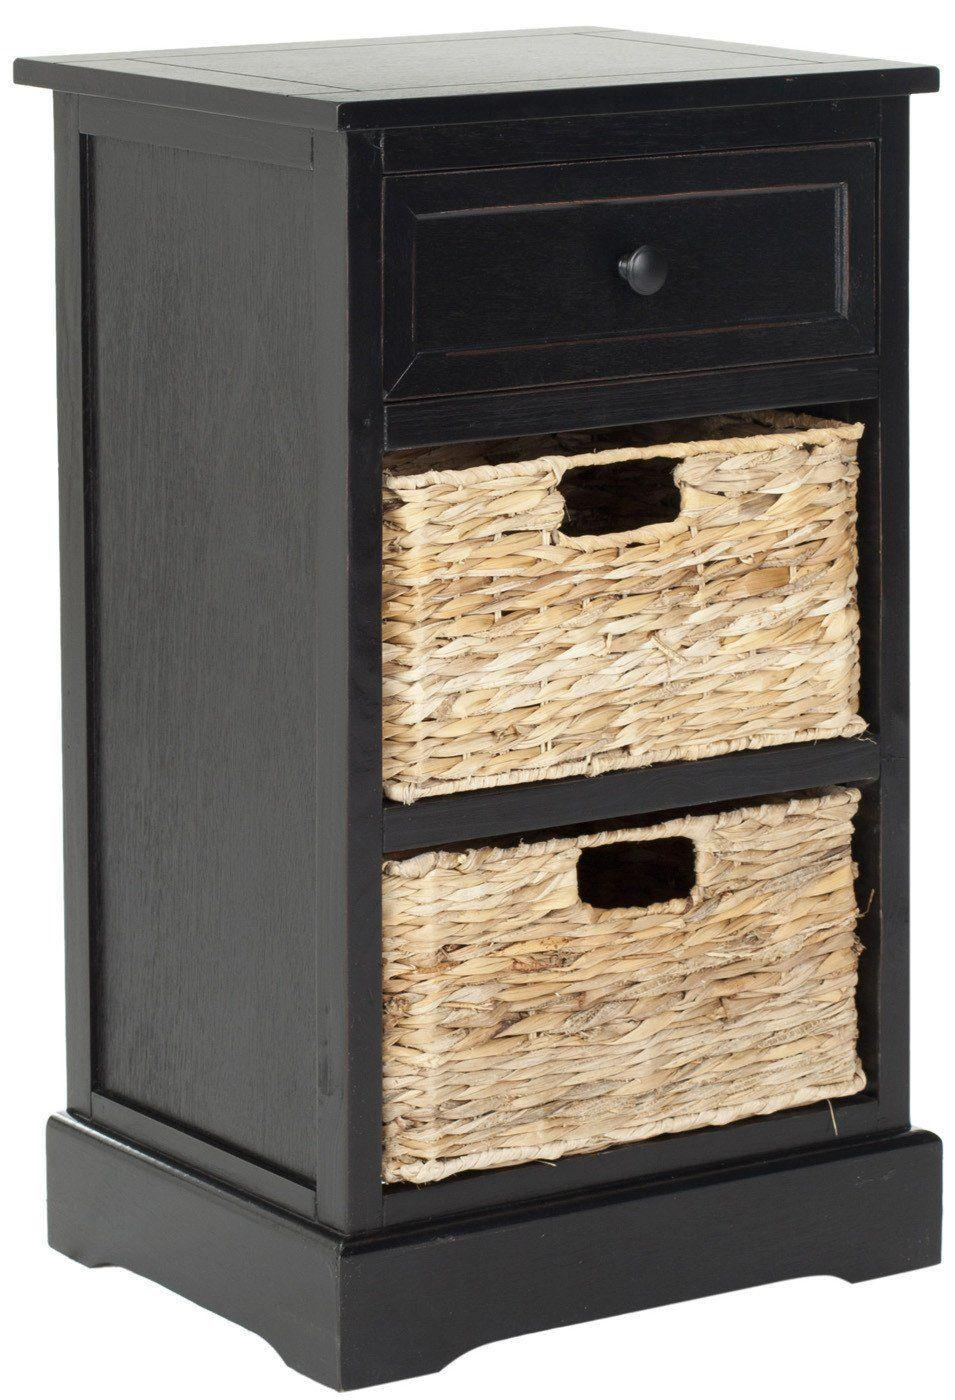 Image of Carrie Side Storage Side Table Distressed Black